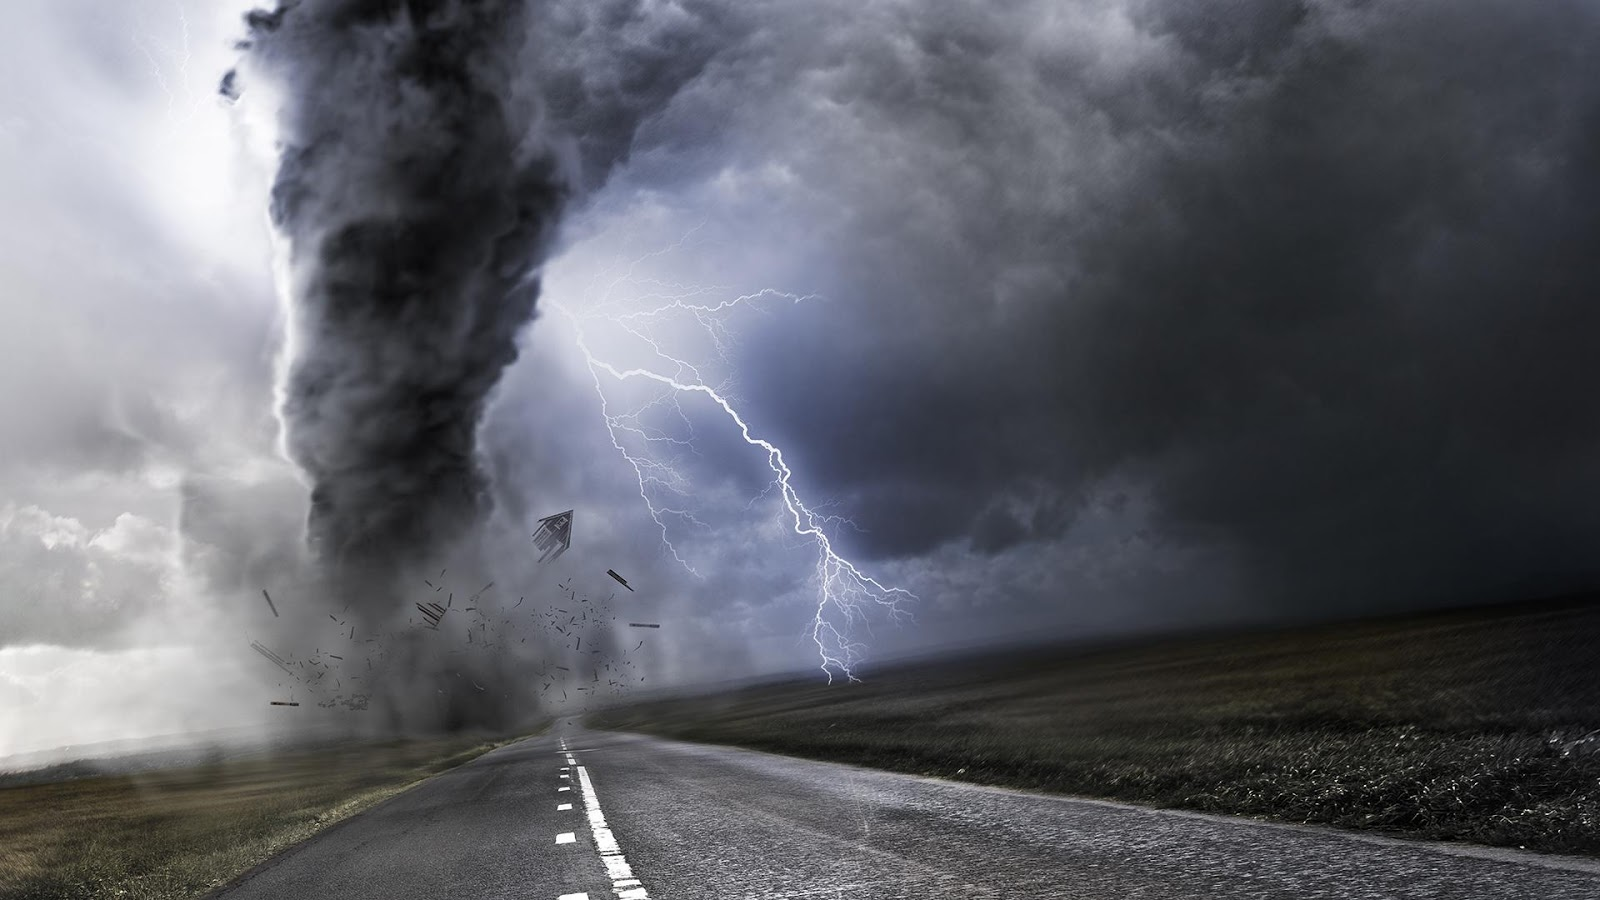 Storm Live Wallpaper - Android Apps on Google Play